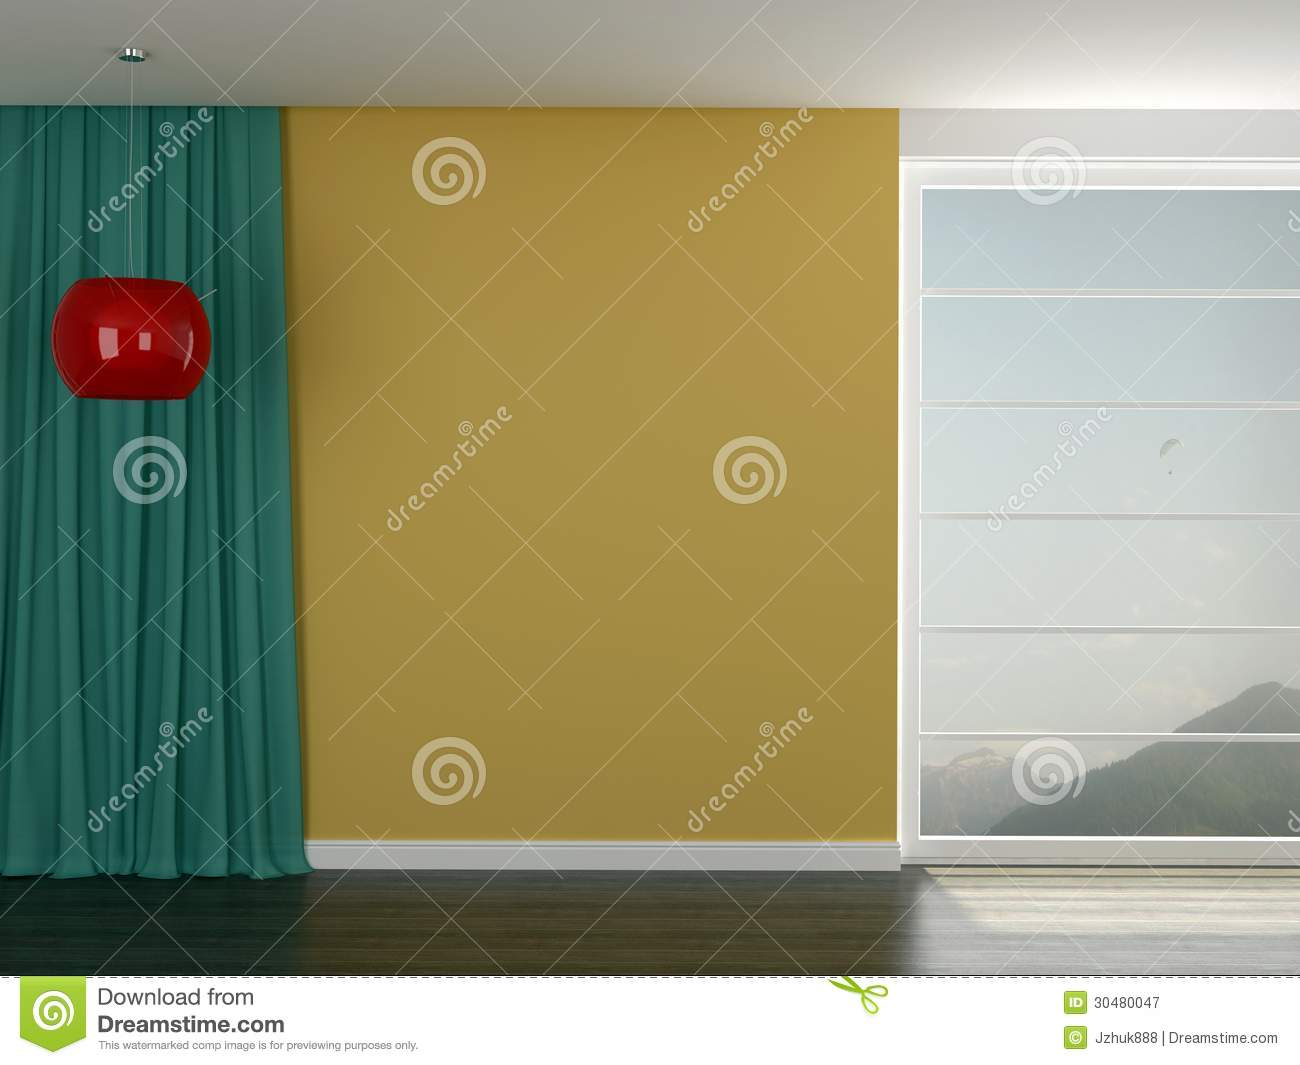 Room With A Bright Yellow Wall Stock Illustration - Illustration of ...